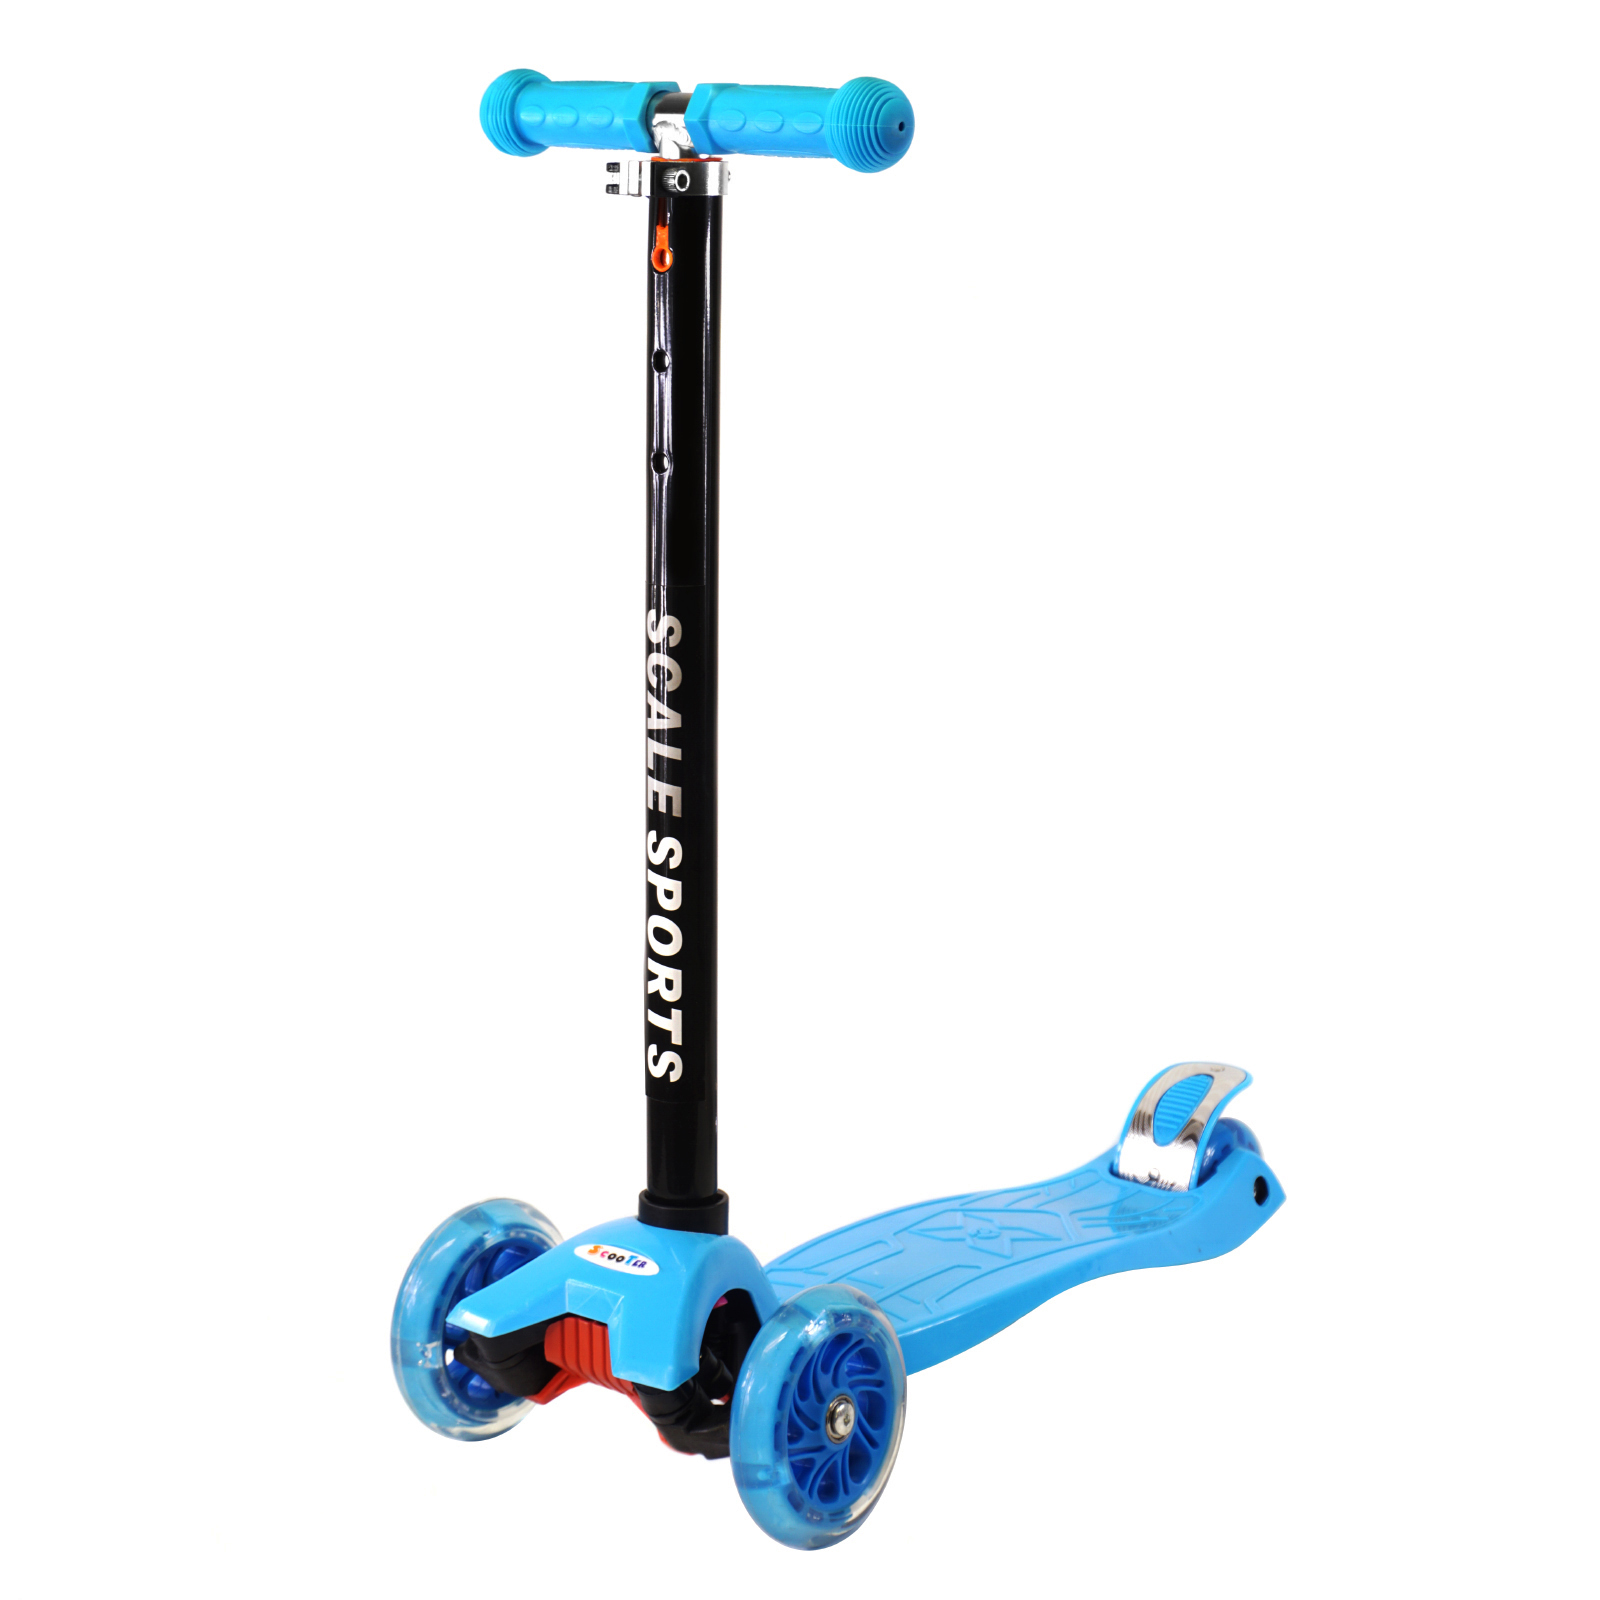 Adjustable Kids Push Kick Scooter with Light Up Wheels by Scale Sports